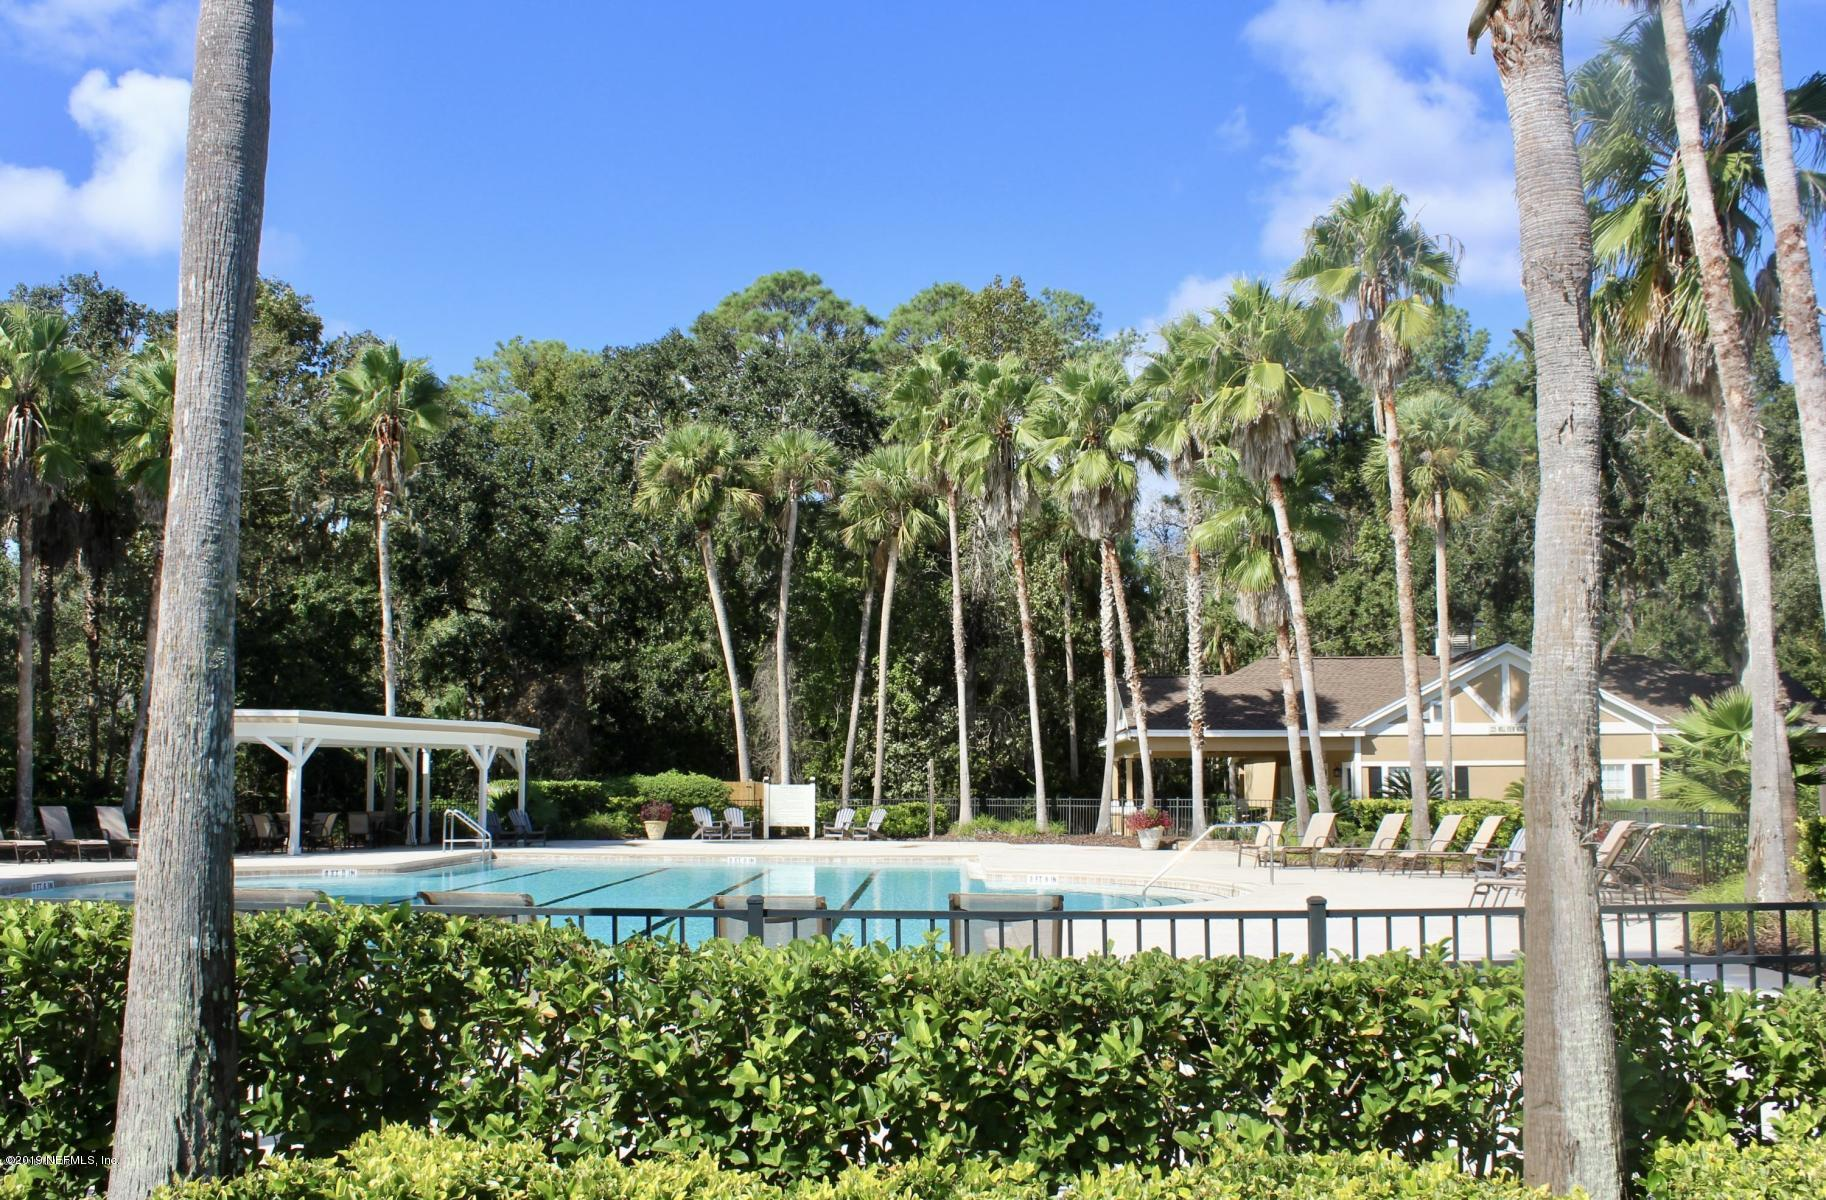 825 SAWYER RUN LN PONTE VEDRA BEACH - 16